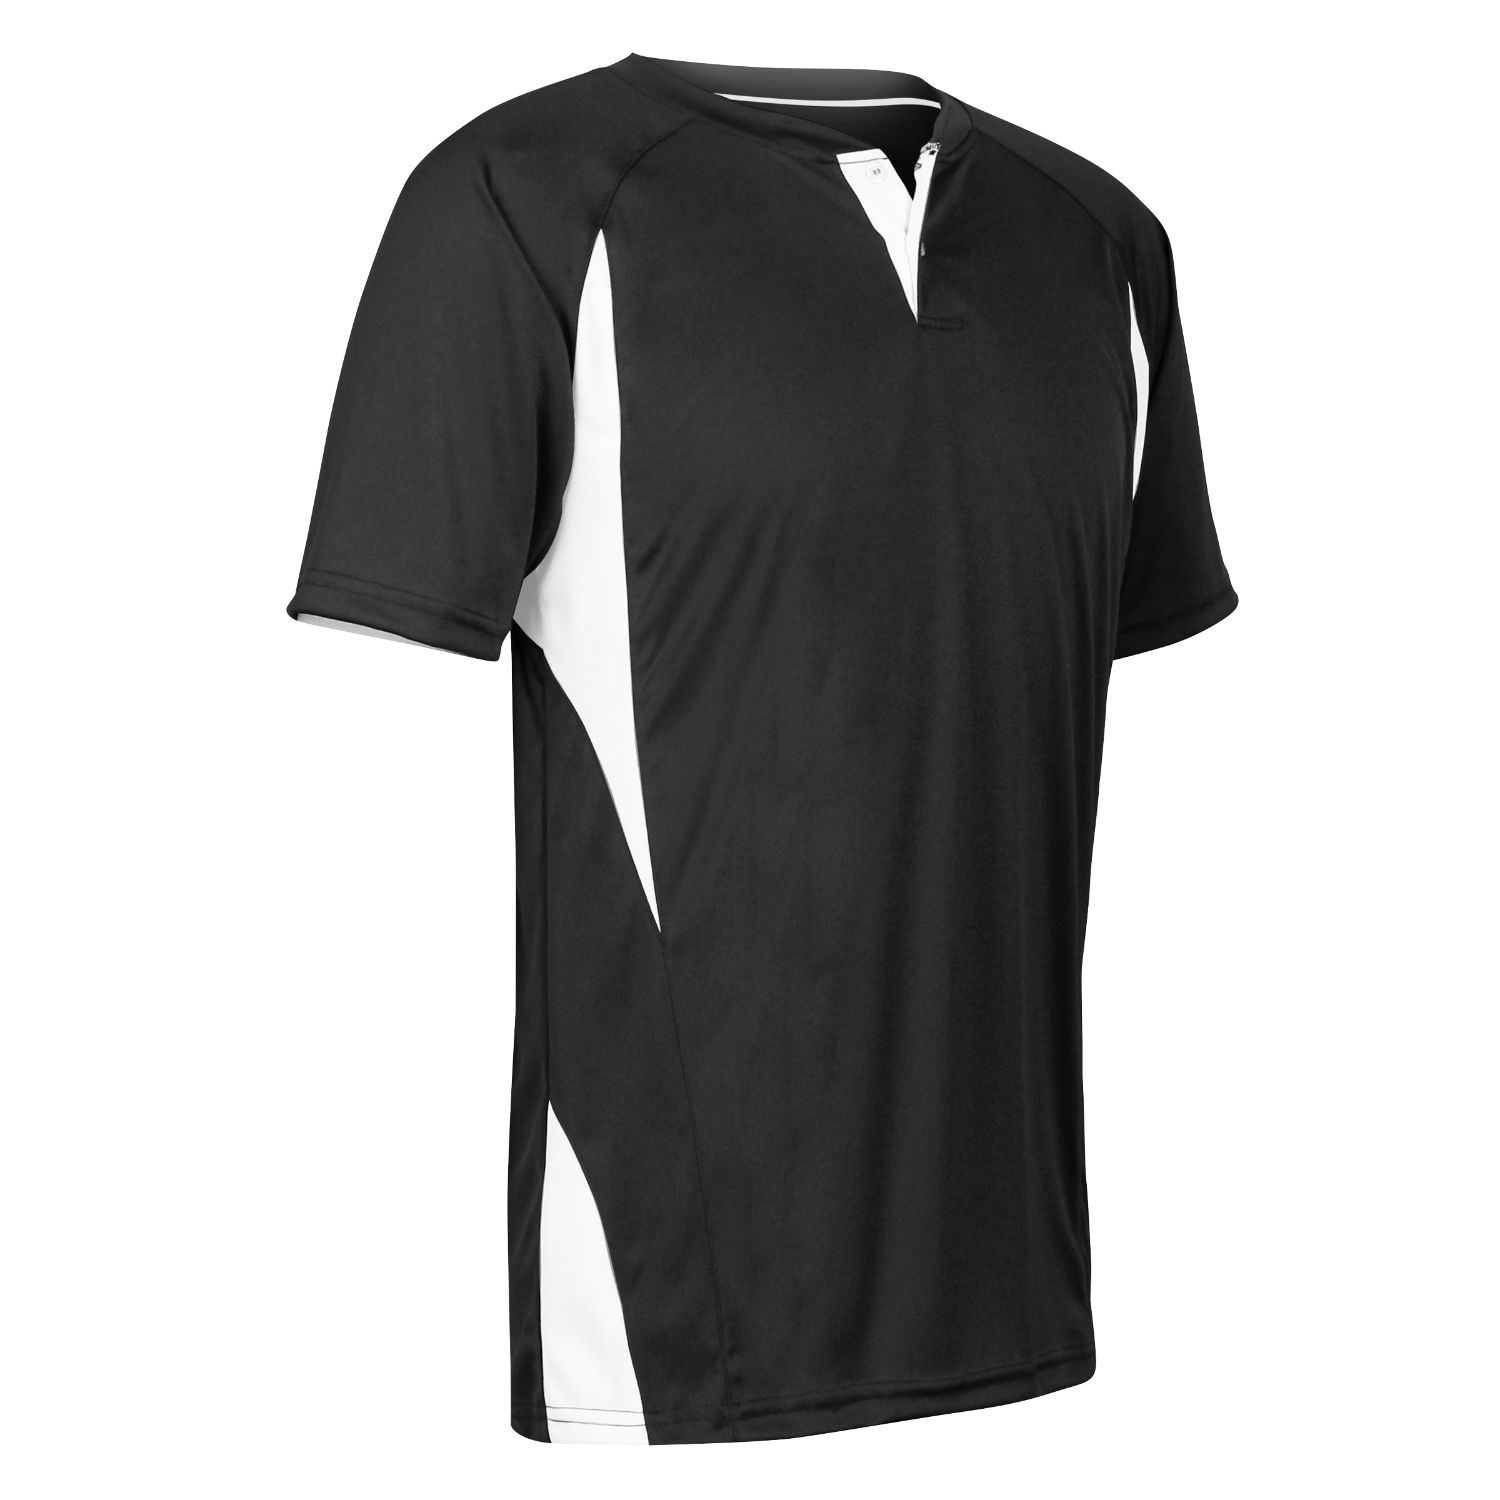 Champro Adult 2 Button Wild Card Jersey Black White Large